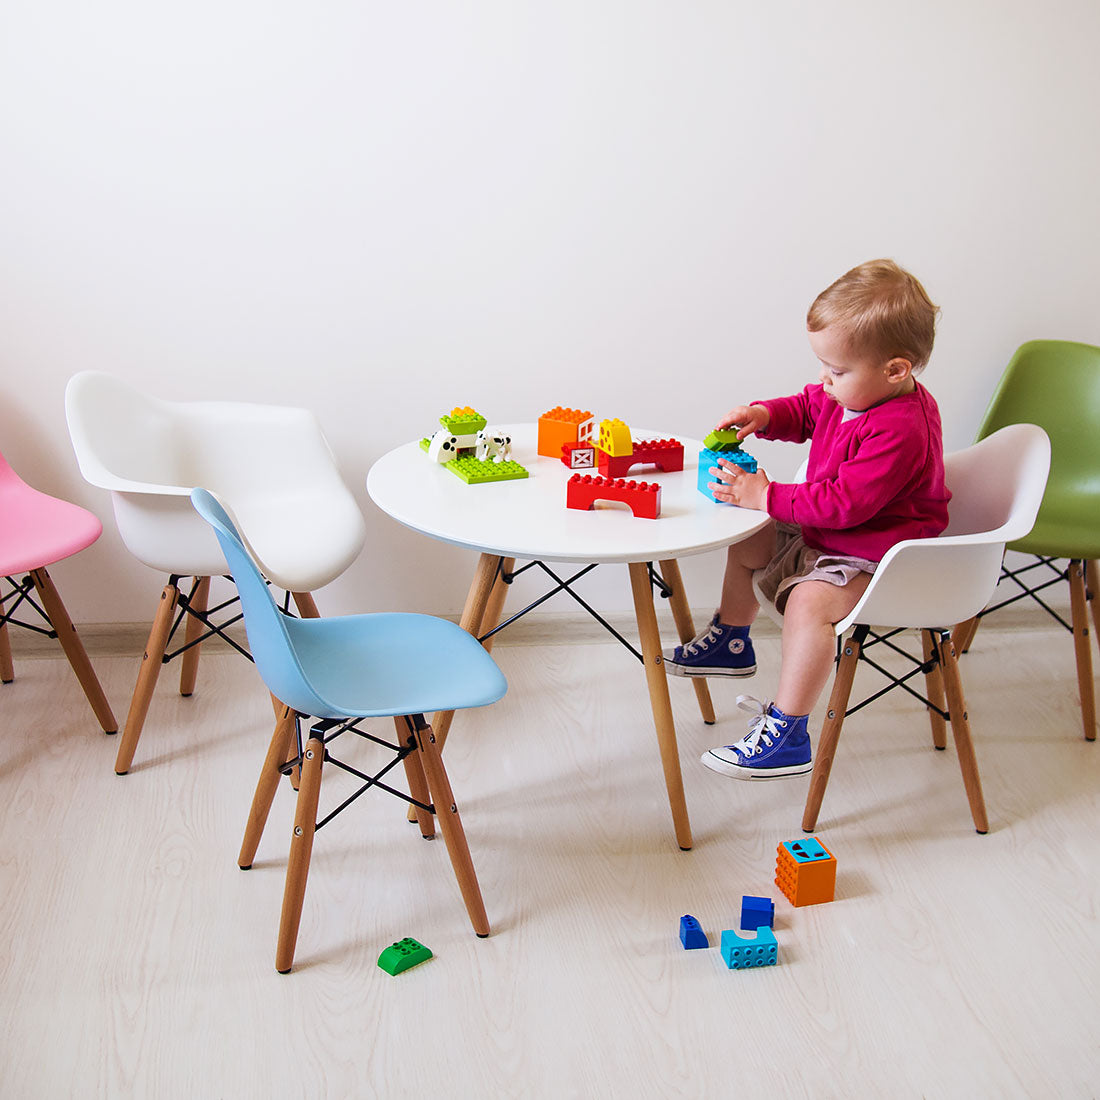 Set of White Style Kids Table and Two Chairs, Armchairs